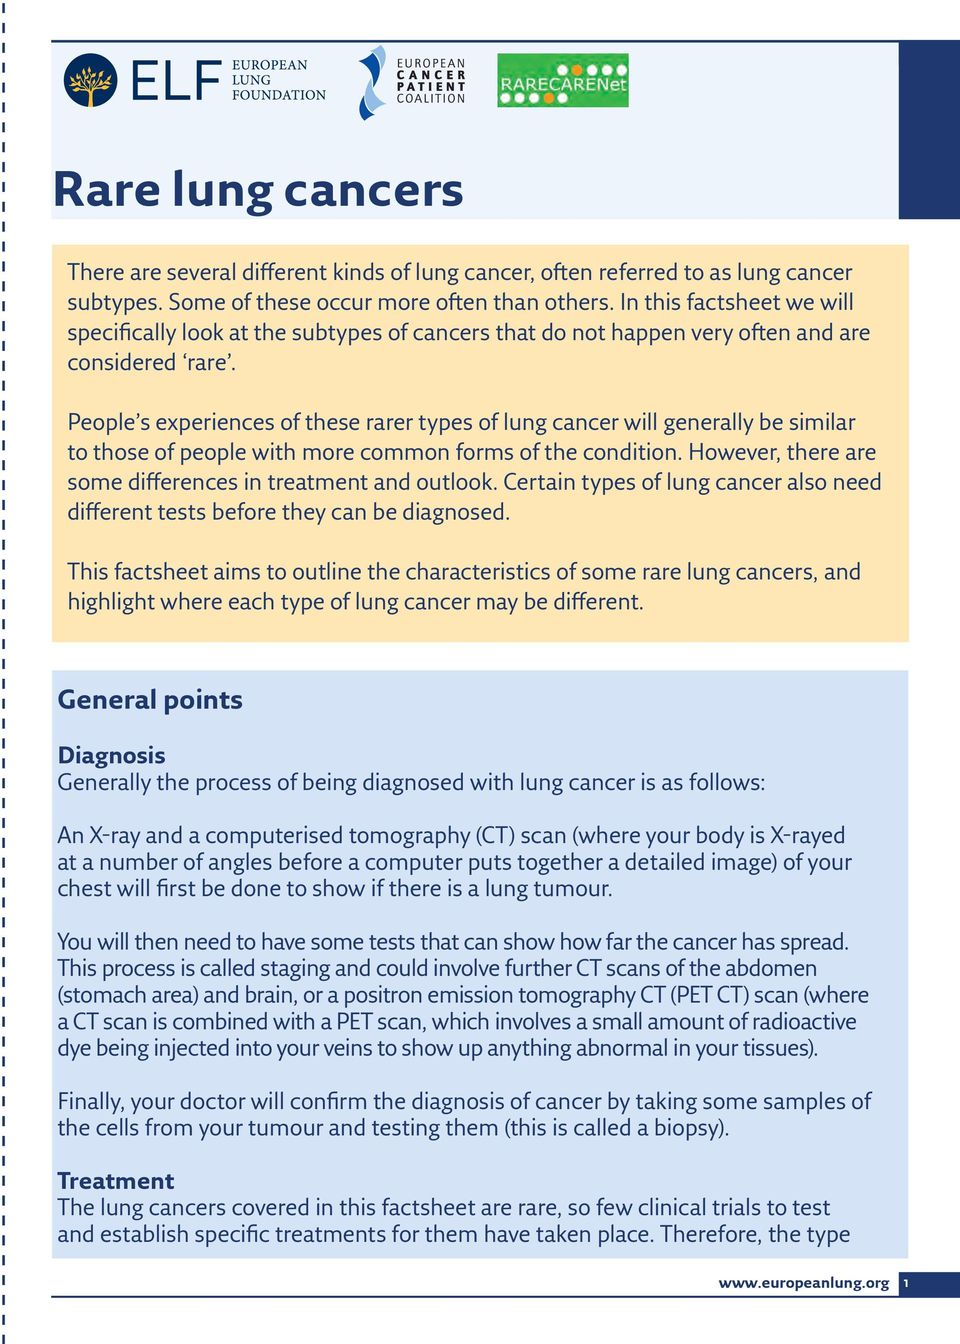 People s experiences of these rarer types of lung cancer will generally be similar to those of people with more common forms of the condition.